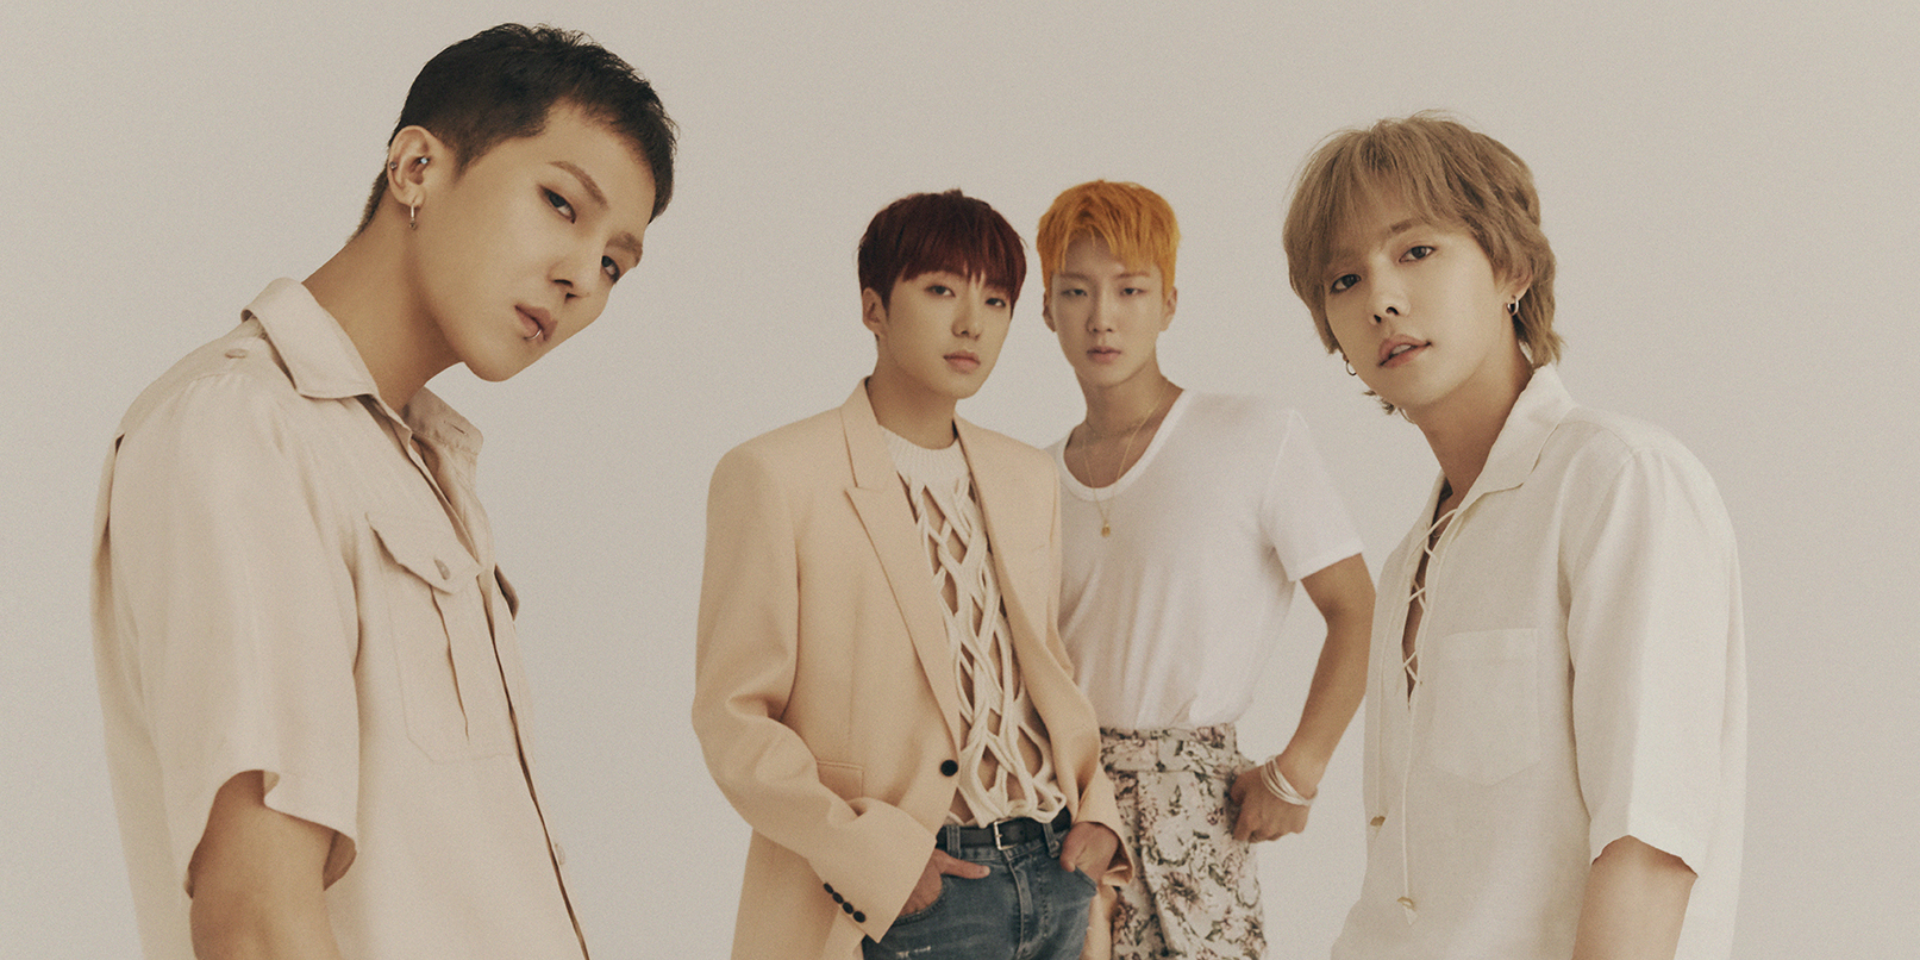 K-pop group Winner announces Cross tour in Asia - shows in Singapore, Kuala Lumpur, Manila, Jakarta, and more